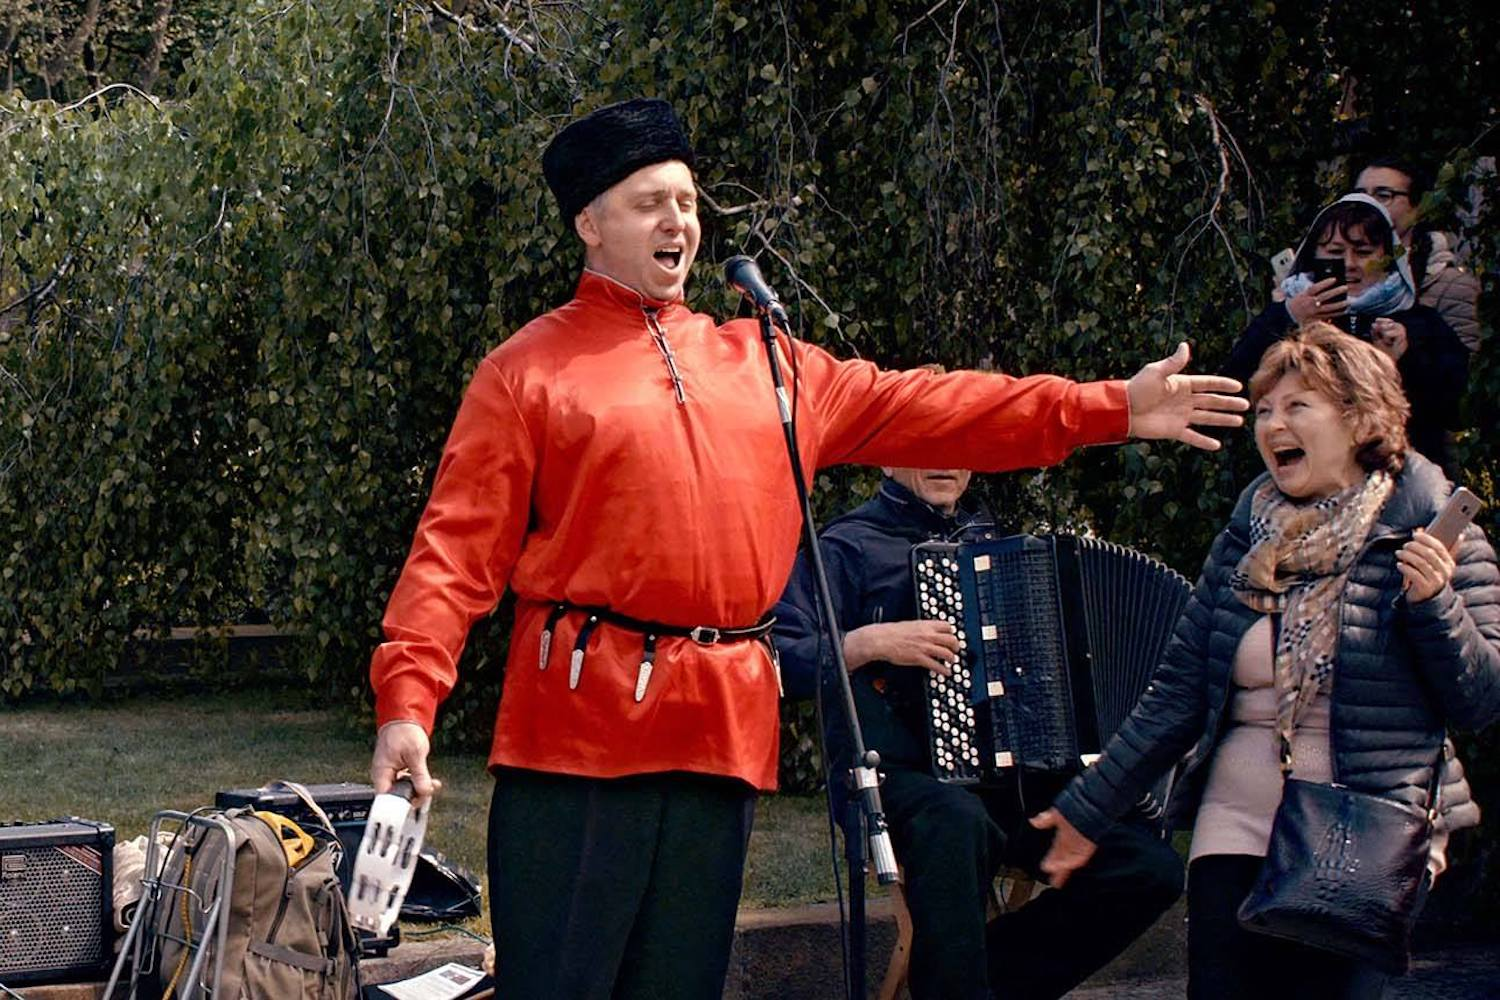 Still from Sergei Loznitsa's Victory Day (2018)